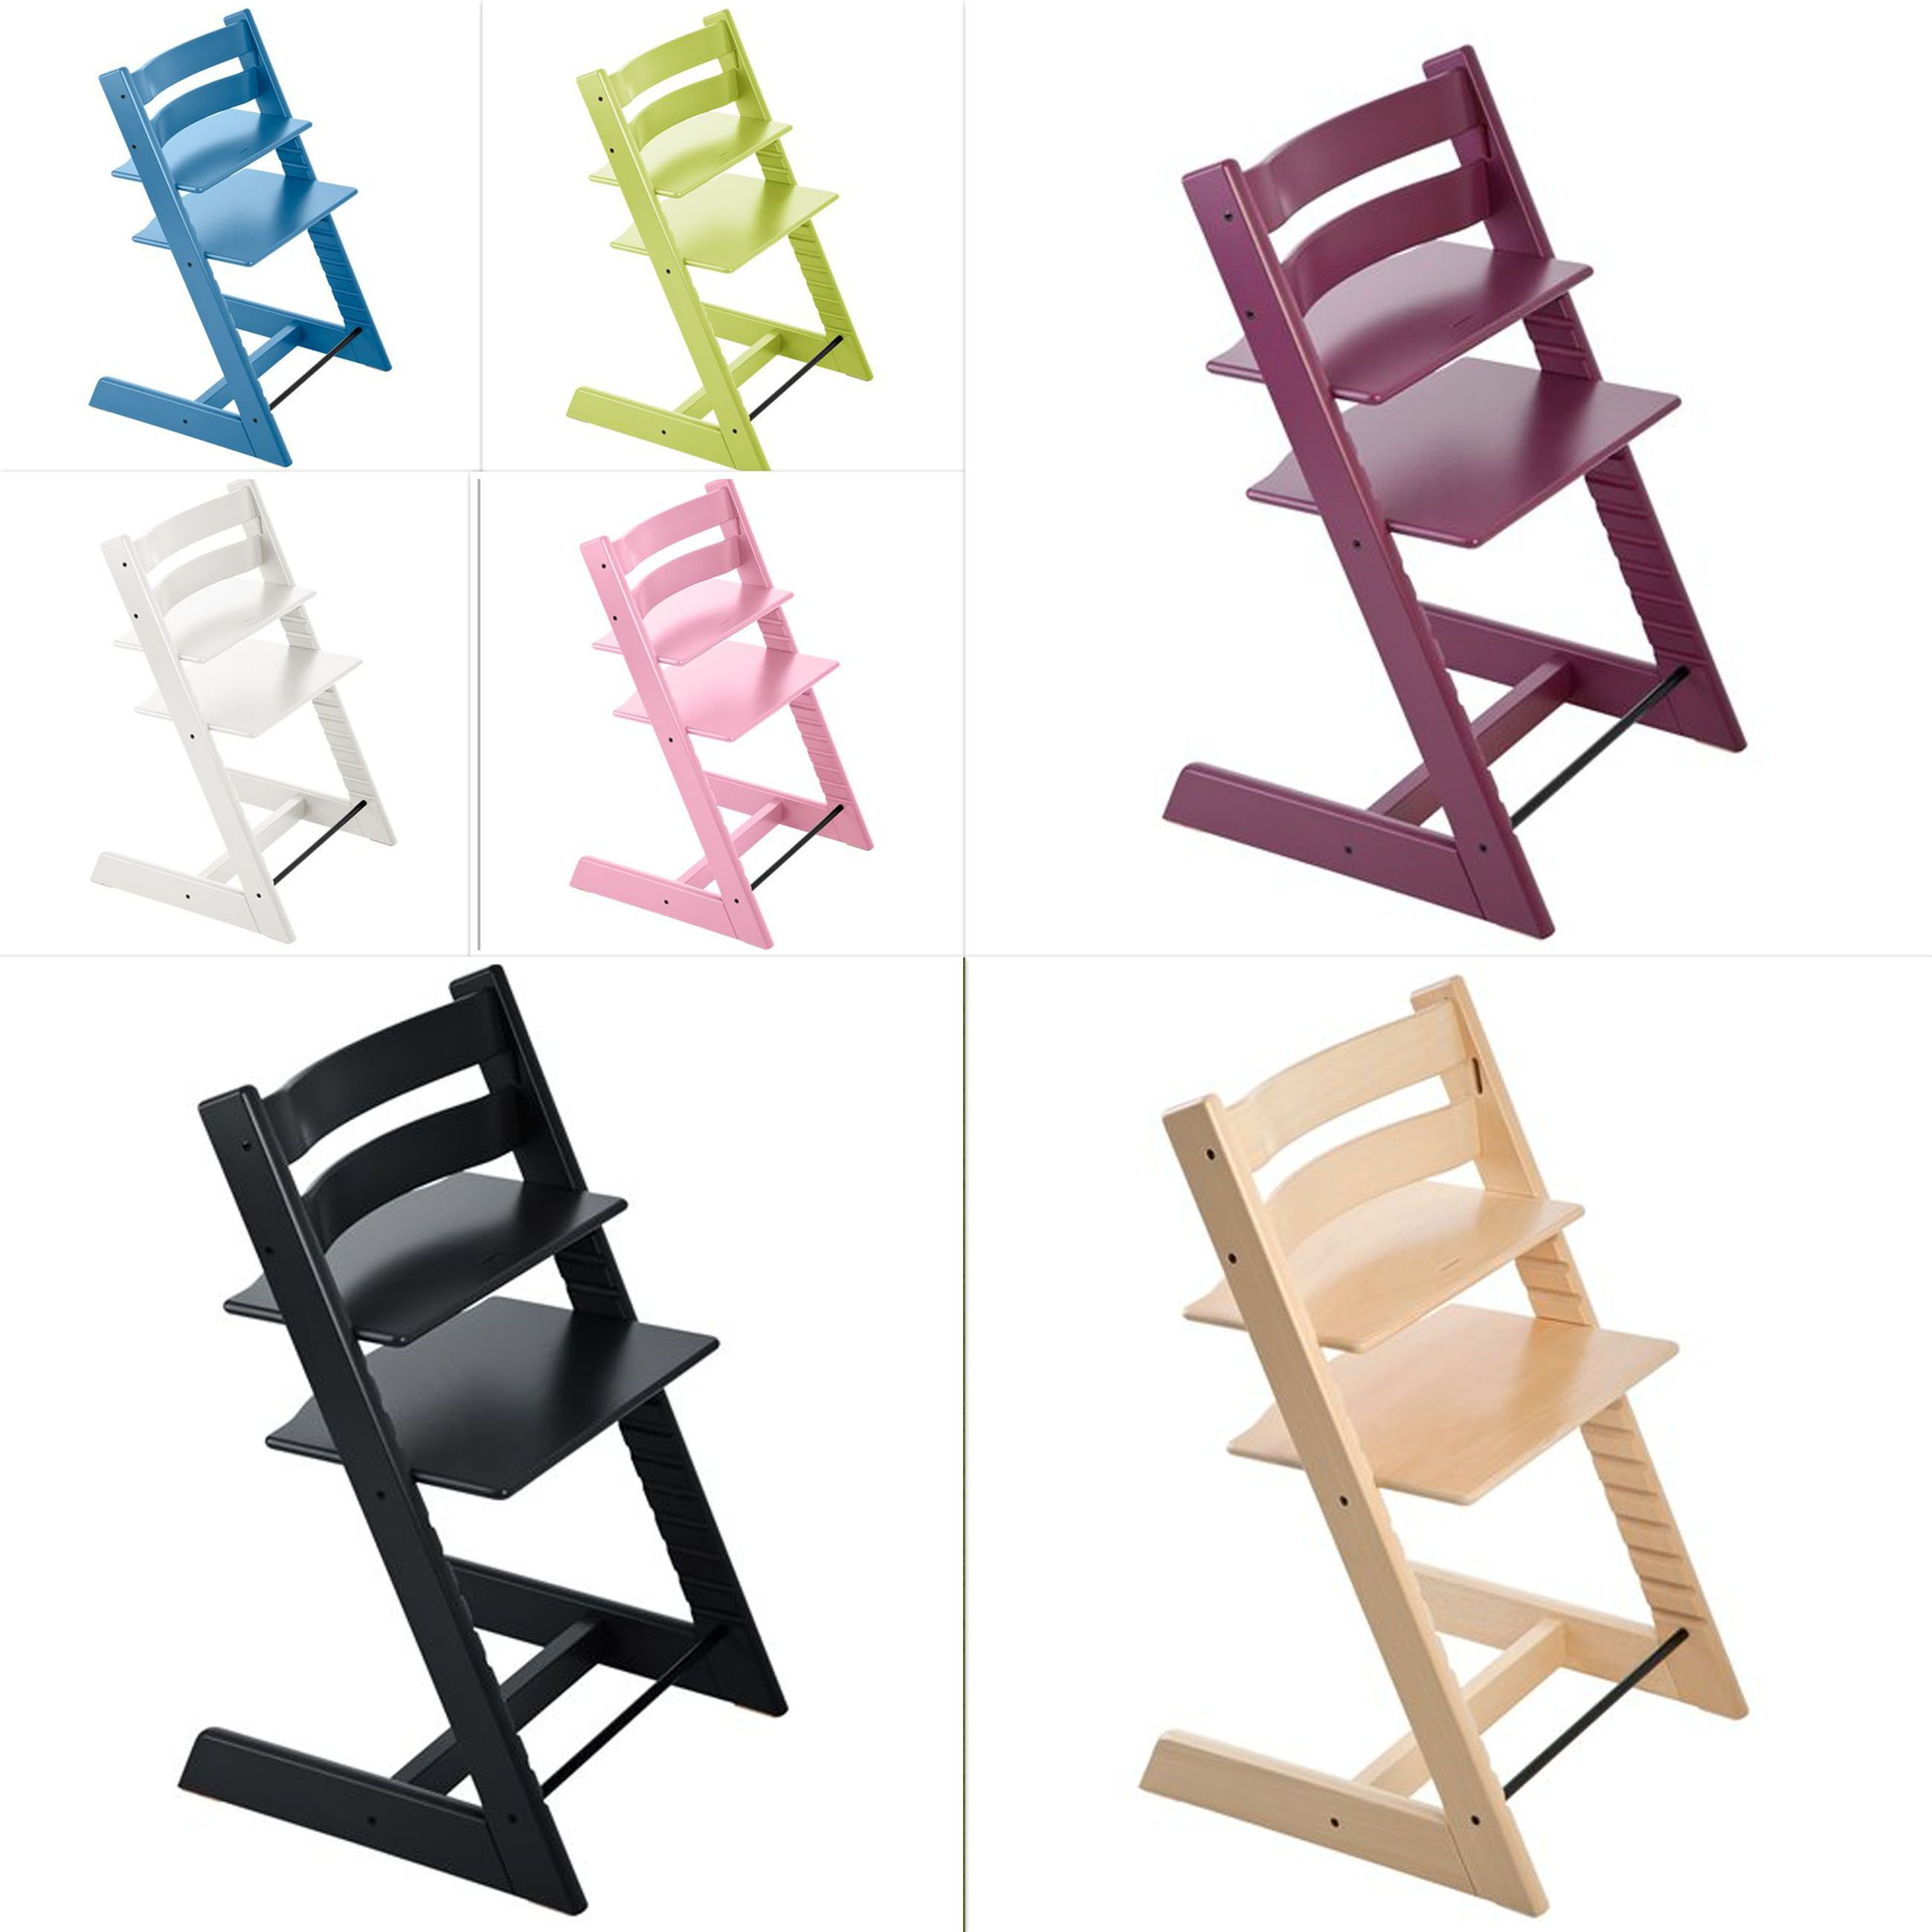 trip trap chair from stokke nicest kids chair for the home pinterest trips chairs and. Black Bedroom Furniture Sets. Home Design Ideas